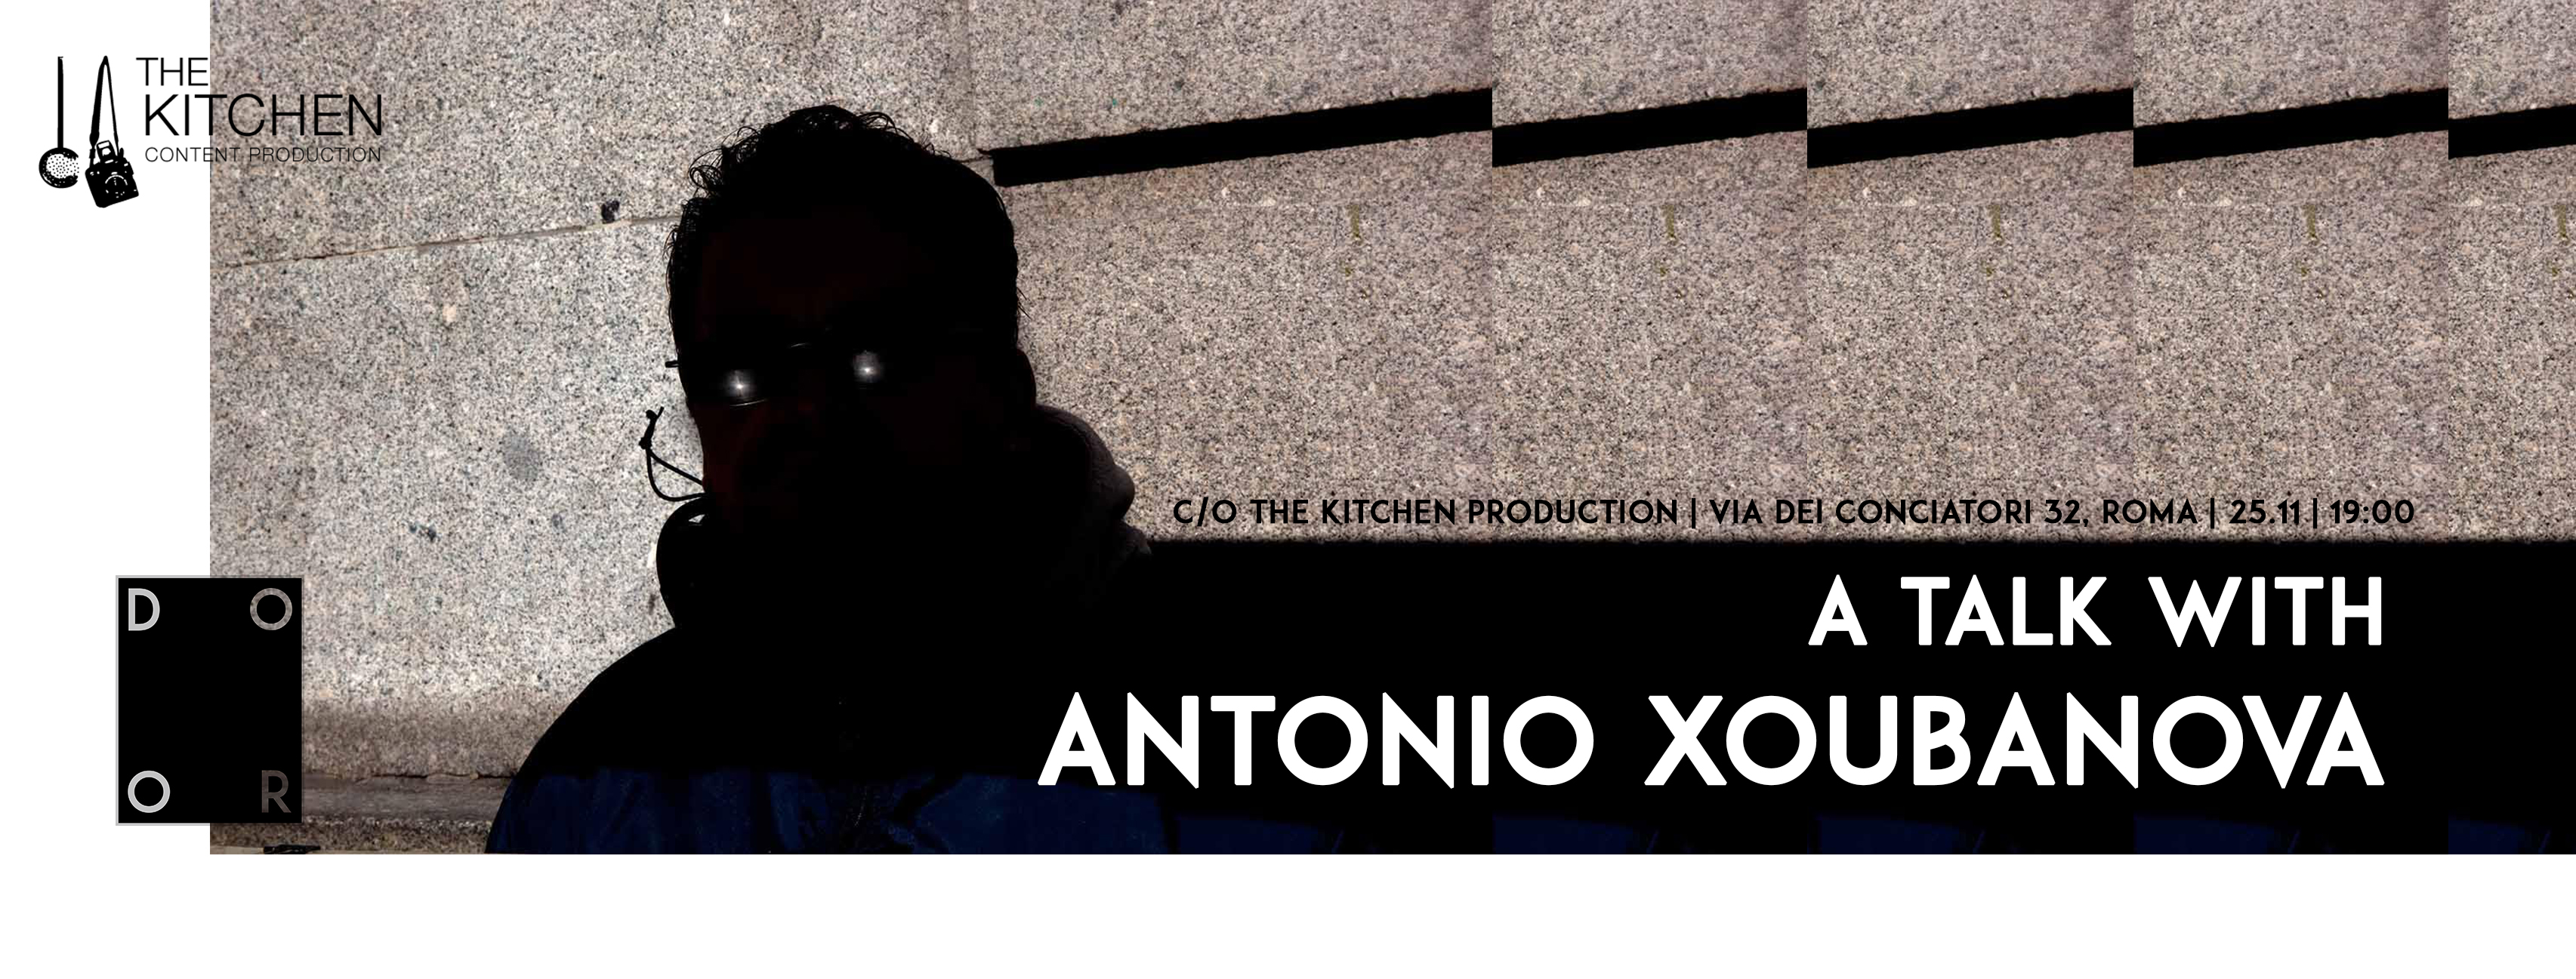 A TALK WITH ANTONIO XOUBANOVA